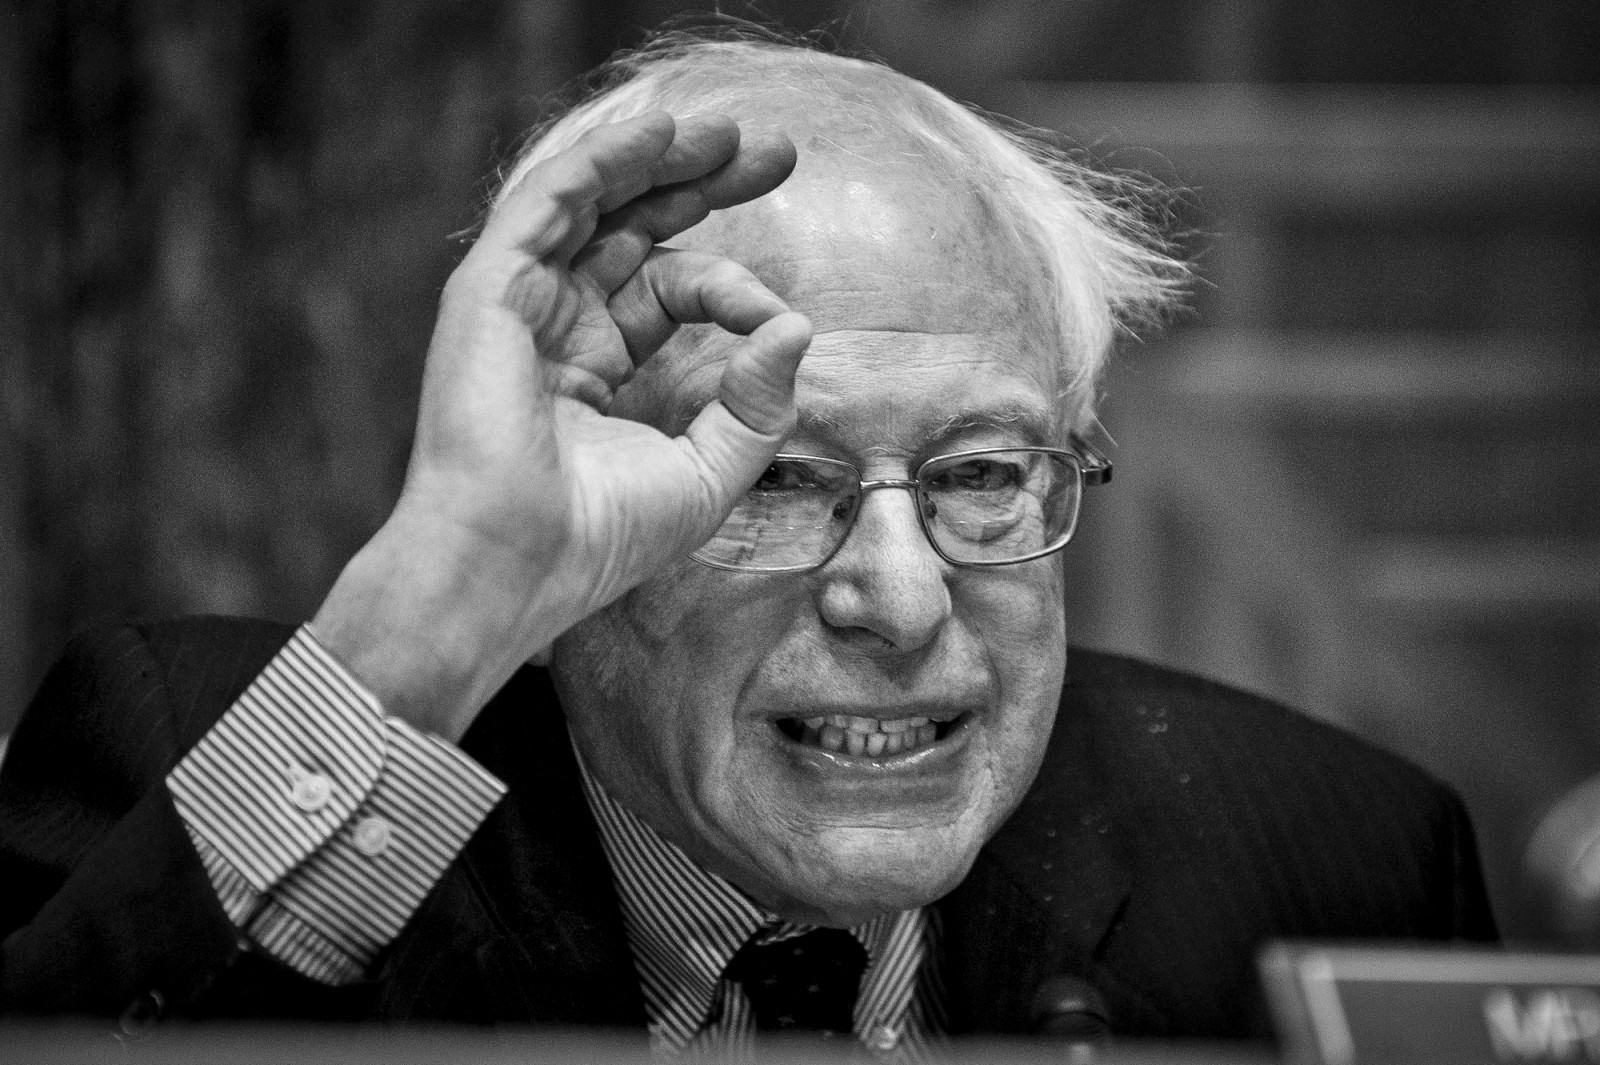 Senator Bernie Sanders (ID-VT) makes opening remarks before Office of Management and Budget Director Shaun Donovan testifies before the Senate Budget Committee on Capitol Hill in Washington, D.C. during a hearing on the president's FY2016 budget request on Feburary 3, 2015.